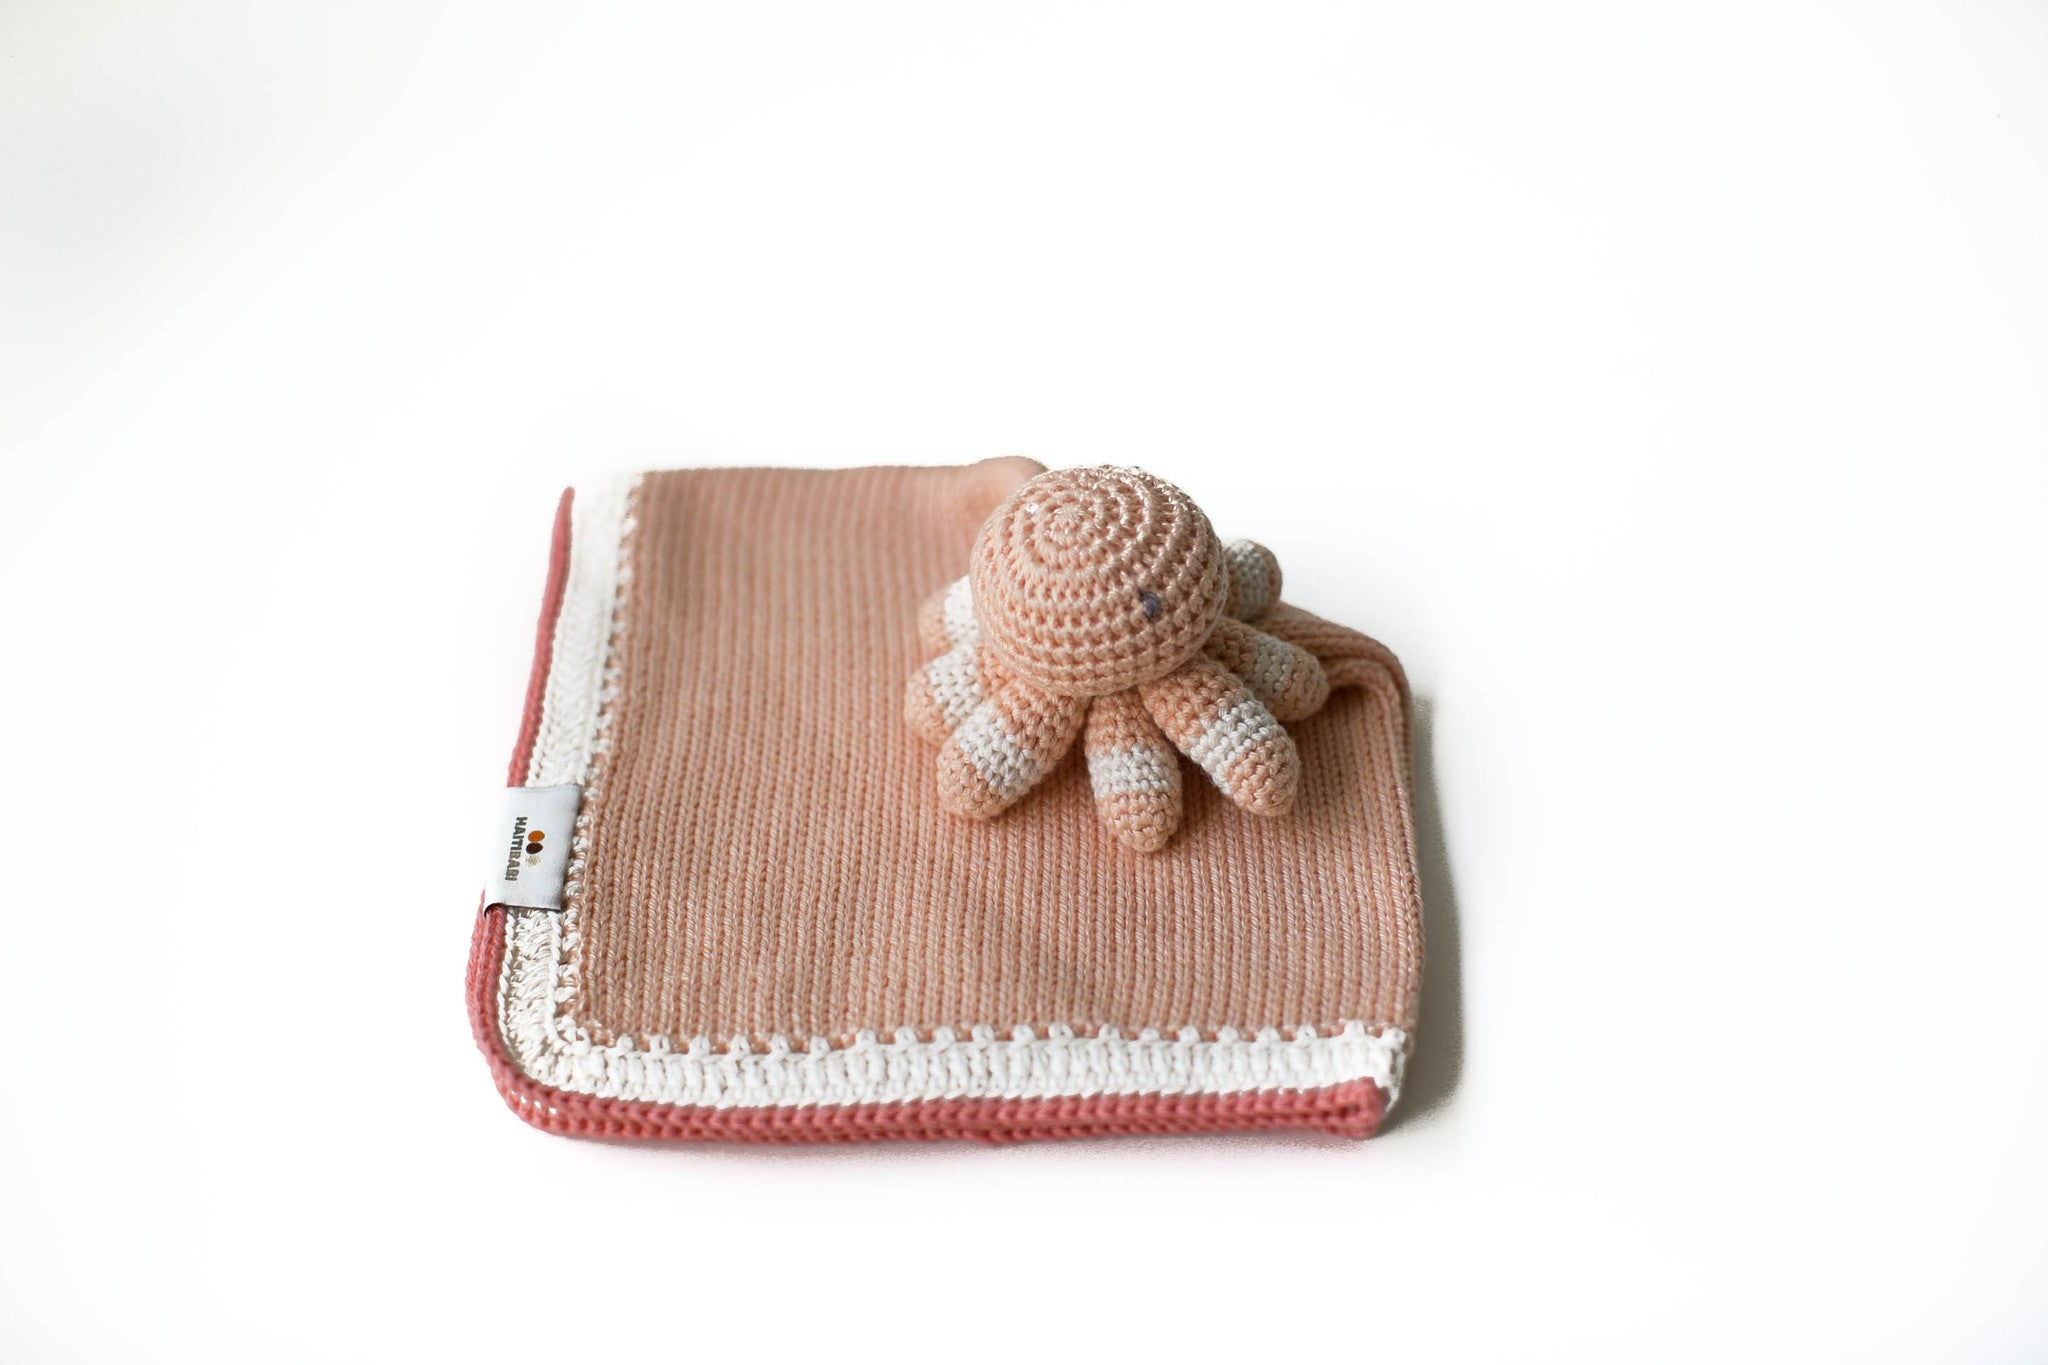 Handknit Octopus Lovey in Peach -2